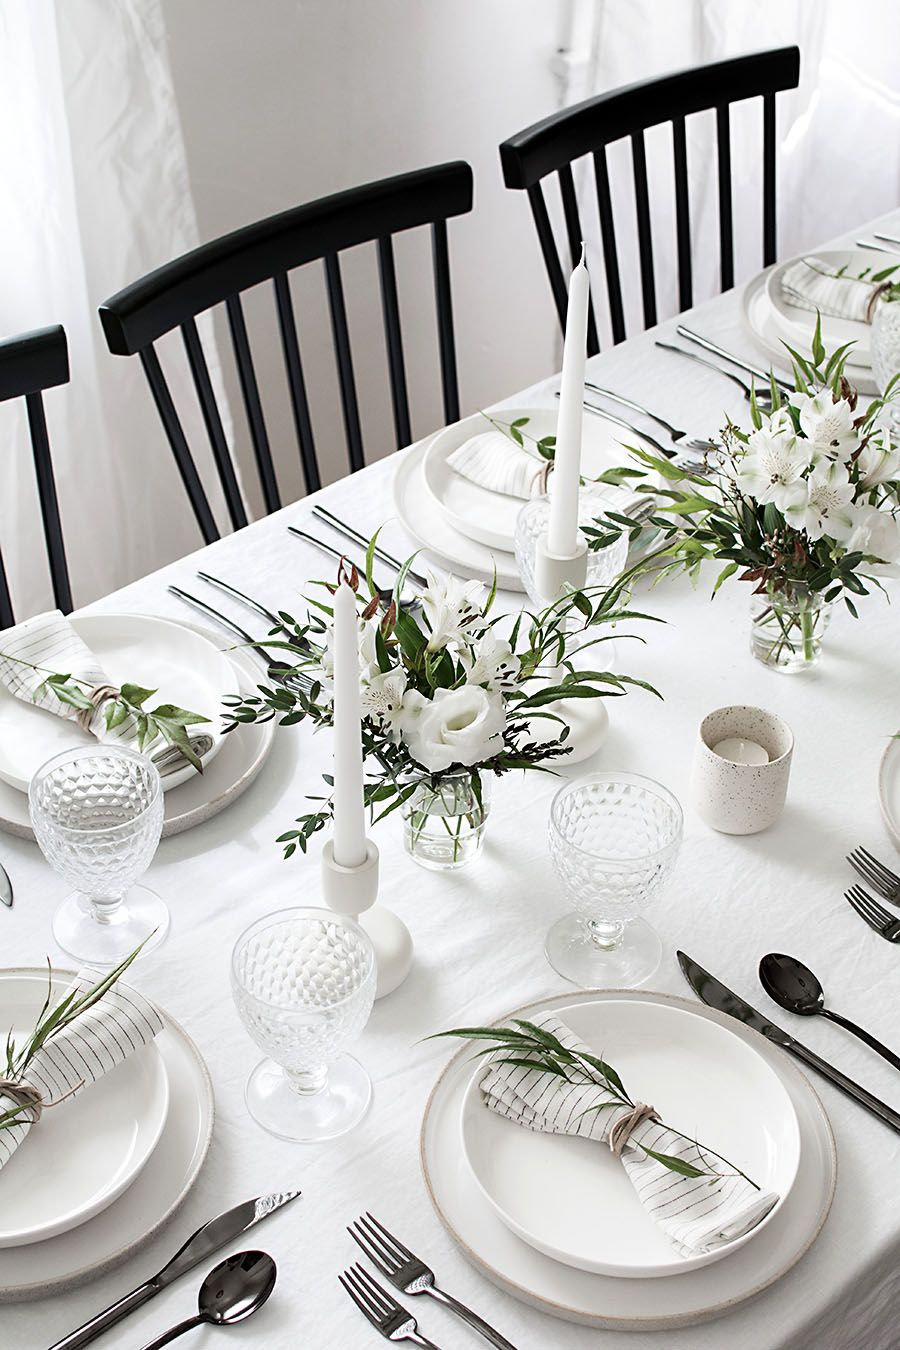 5 Tips To Set A Simple And Modern Tablescape Arranjo De Mesa Casamento Decoracao De Mesa Mesa De Acao De Gracas